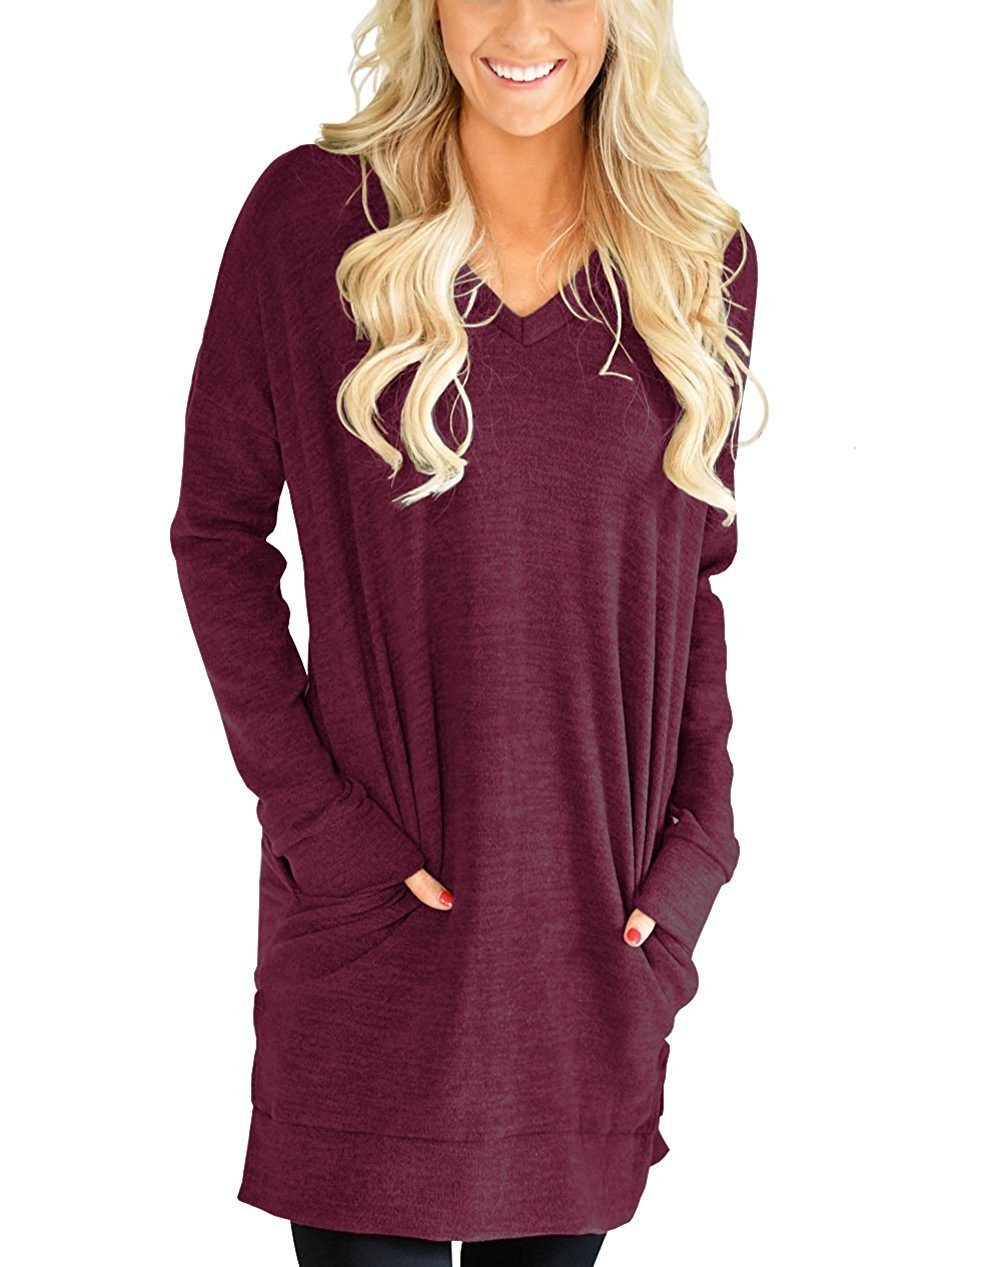 Kool Classic Womens Casual Long Sleeves Solid V-Neck Tunics Tops With Pockets Wine Red XX-Large